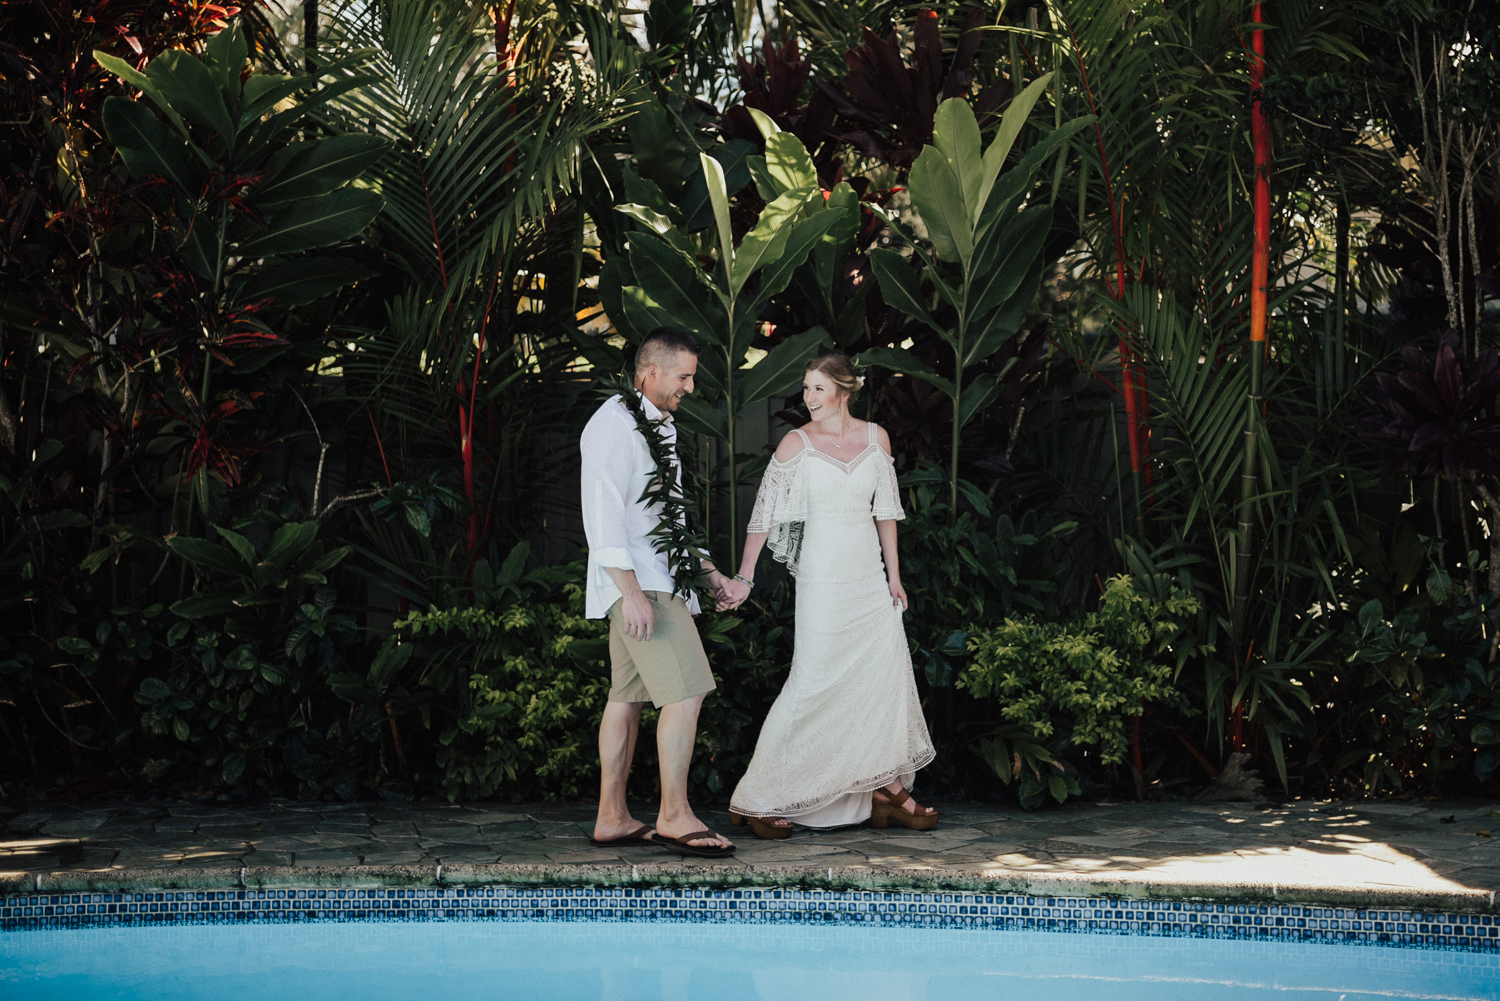 Kauai-elopement-photographer-16.jpg